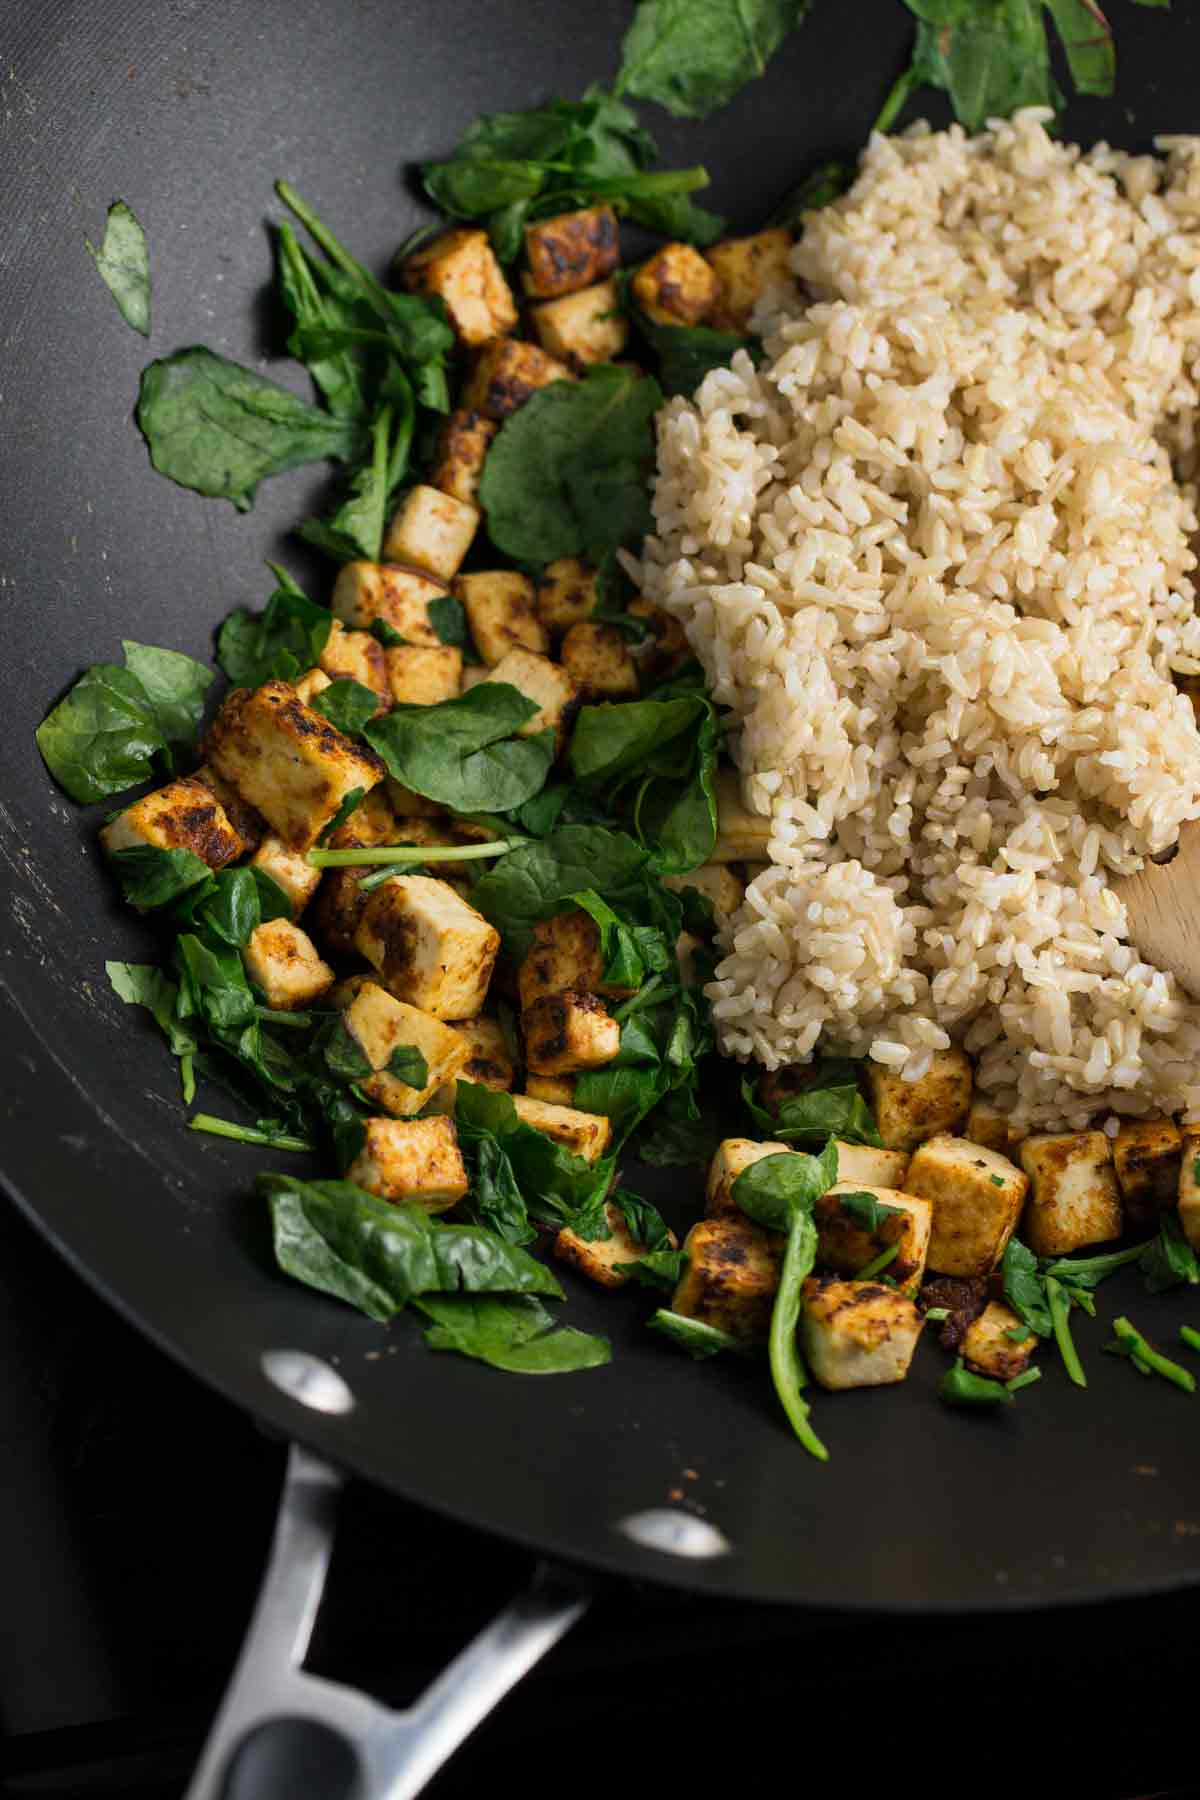 Closeup of rice, tofu and spinach being cooked in a wok.